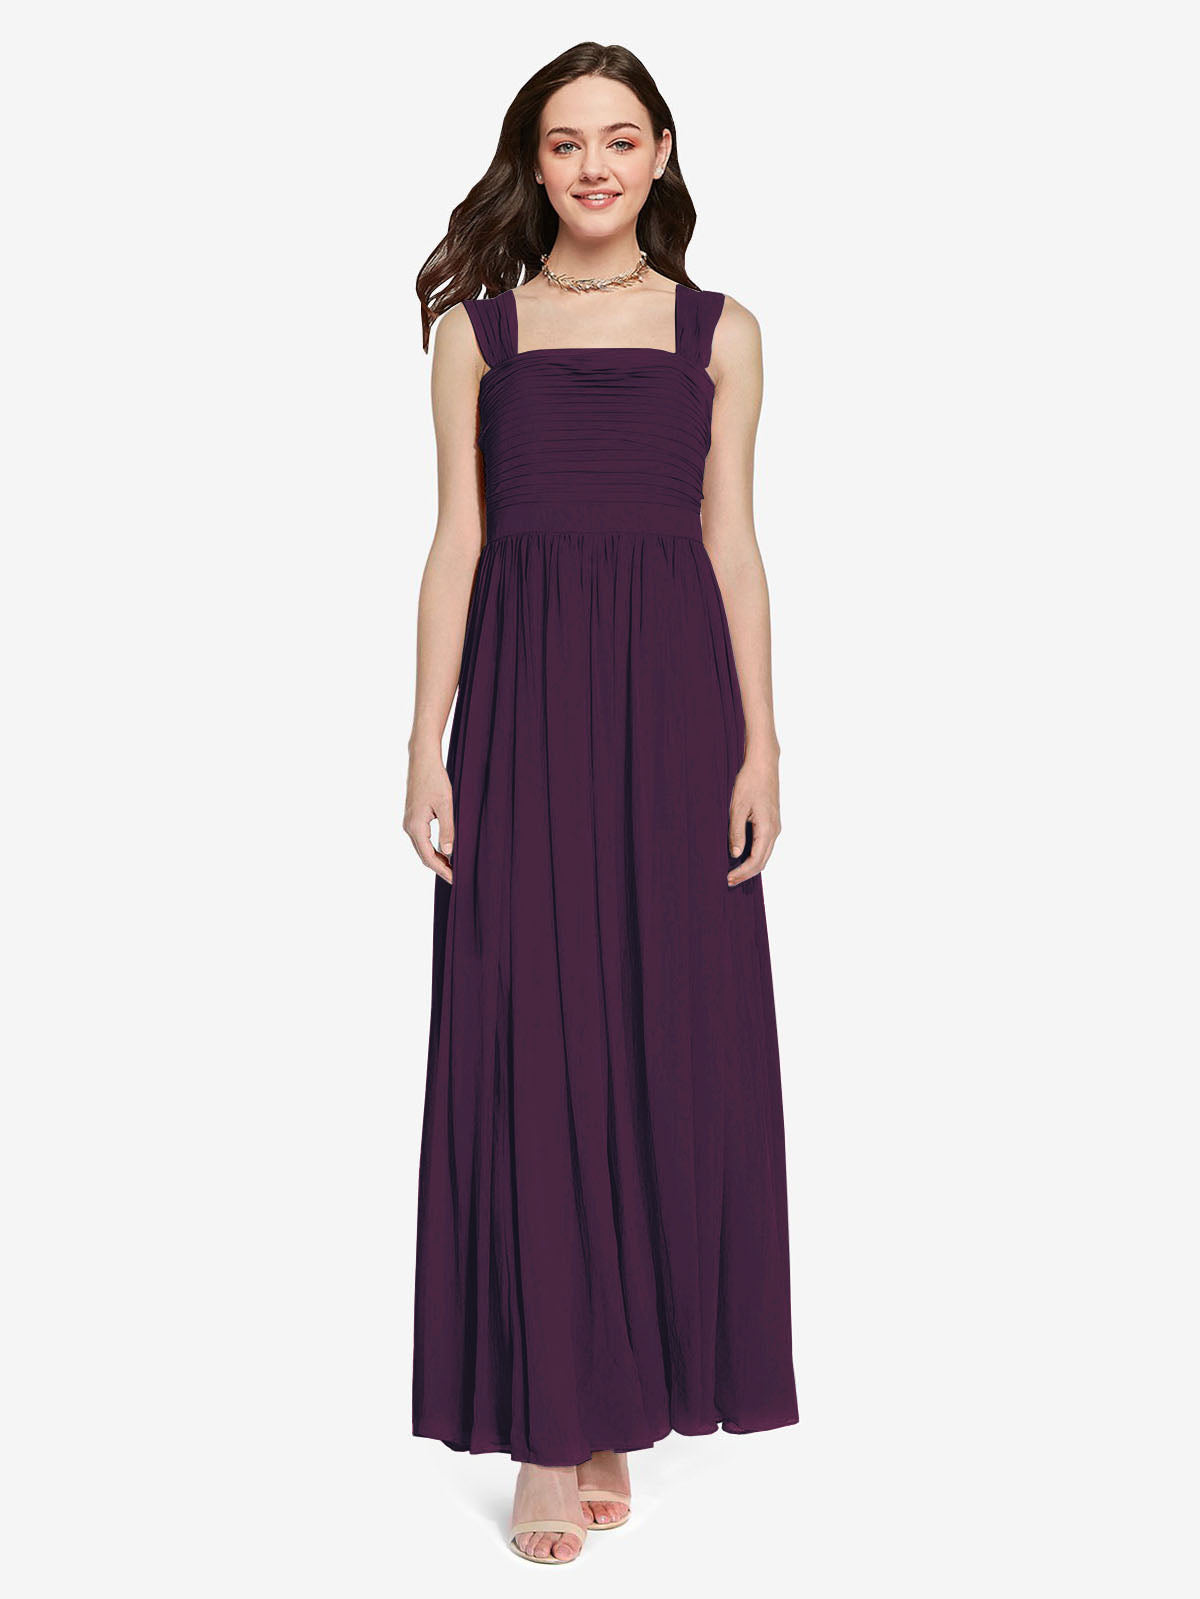 Long A-Line Square Sleeveless Grape Chiffon Bridesmaid Dress Aldridge